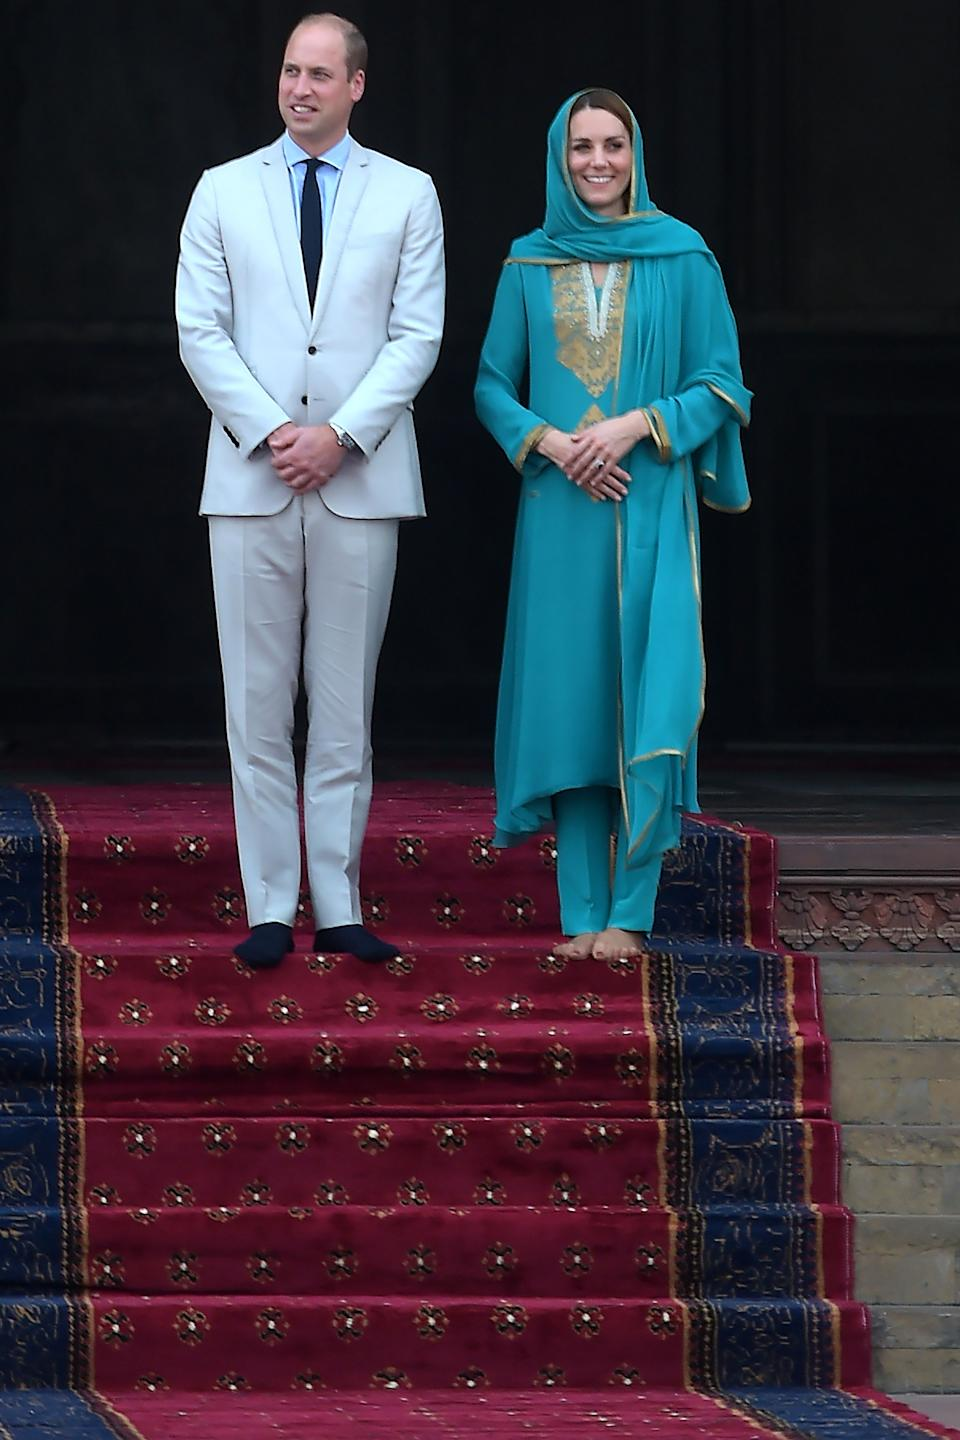 Kate wore a green shalwar kameez and matching head scarf by Pakistani designer Maheen Khan for the Badshahi mosque visit. [<em>Photo: Getty]</em>